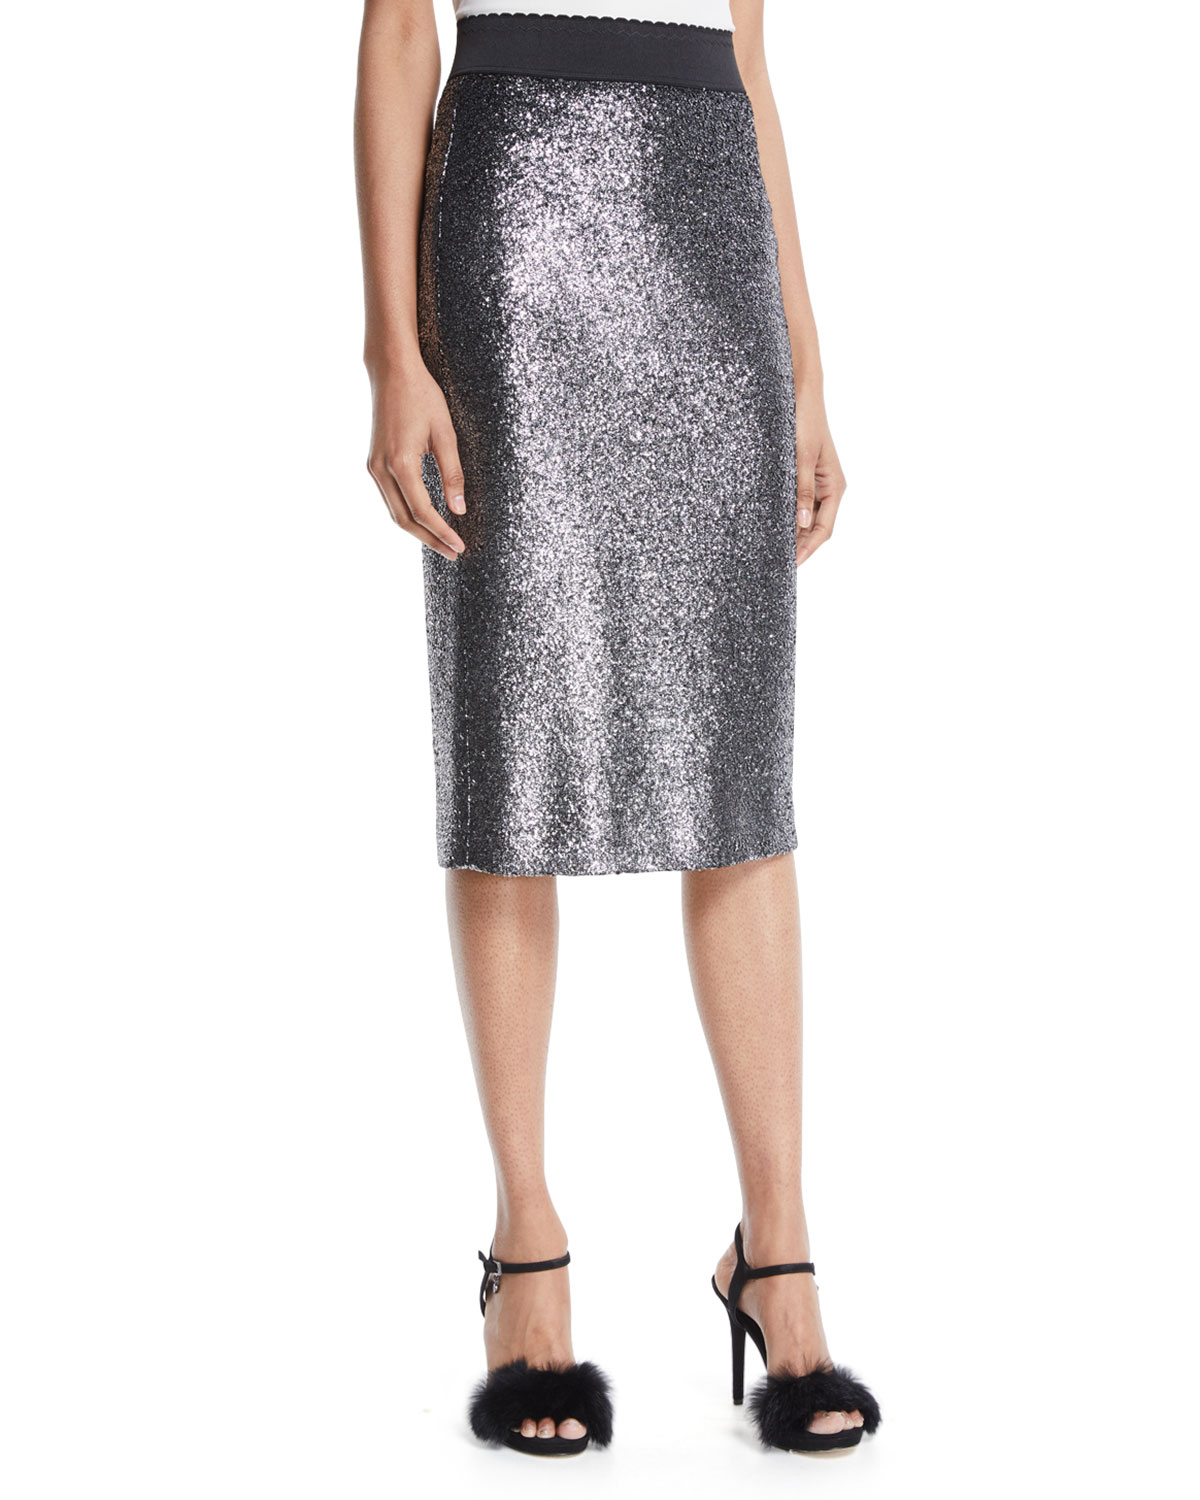 01a5785c92a Boutique Moschino Metallic Boucle Knit Pencil Skirt